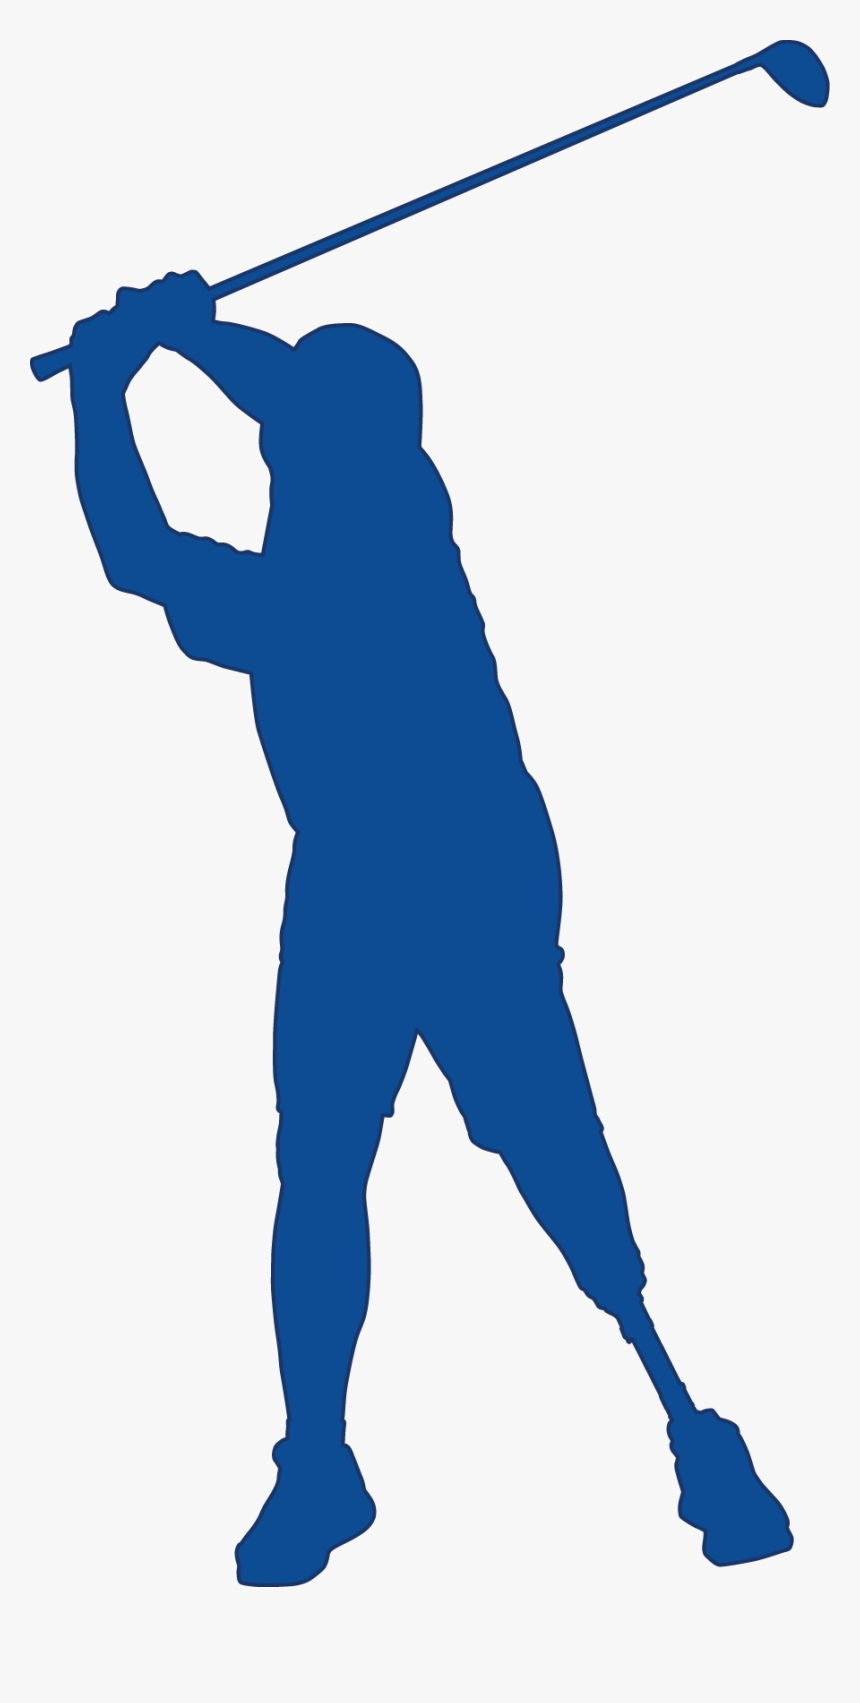 Clip Art Line Silhouette Vector Graphics H&m - Toss A Bocce Ball, HD Png Download, Free Download